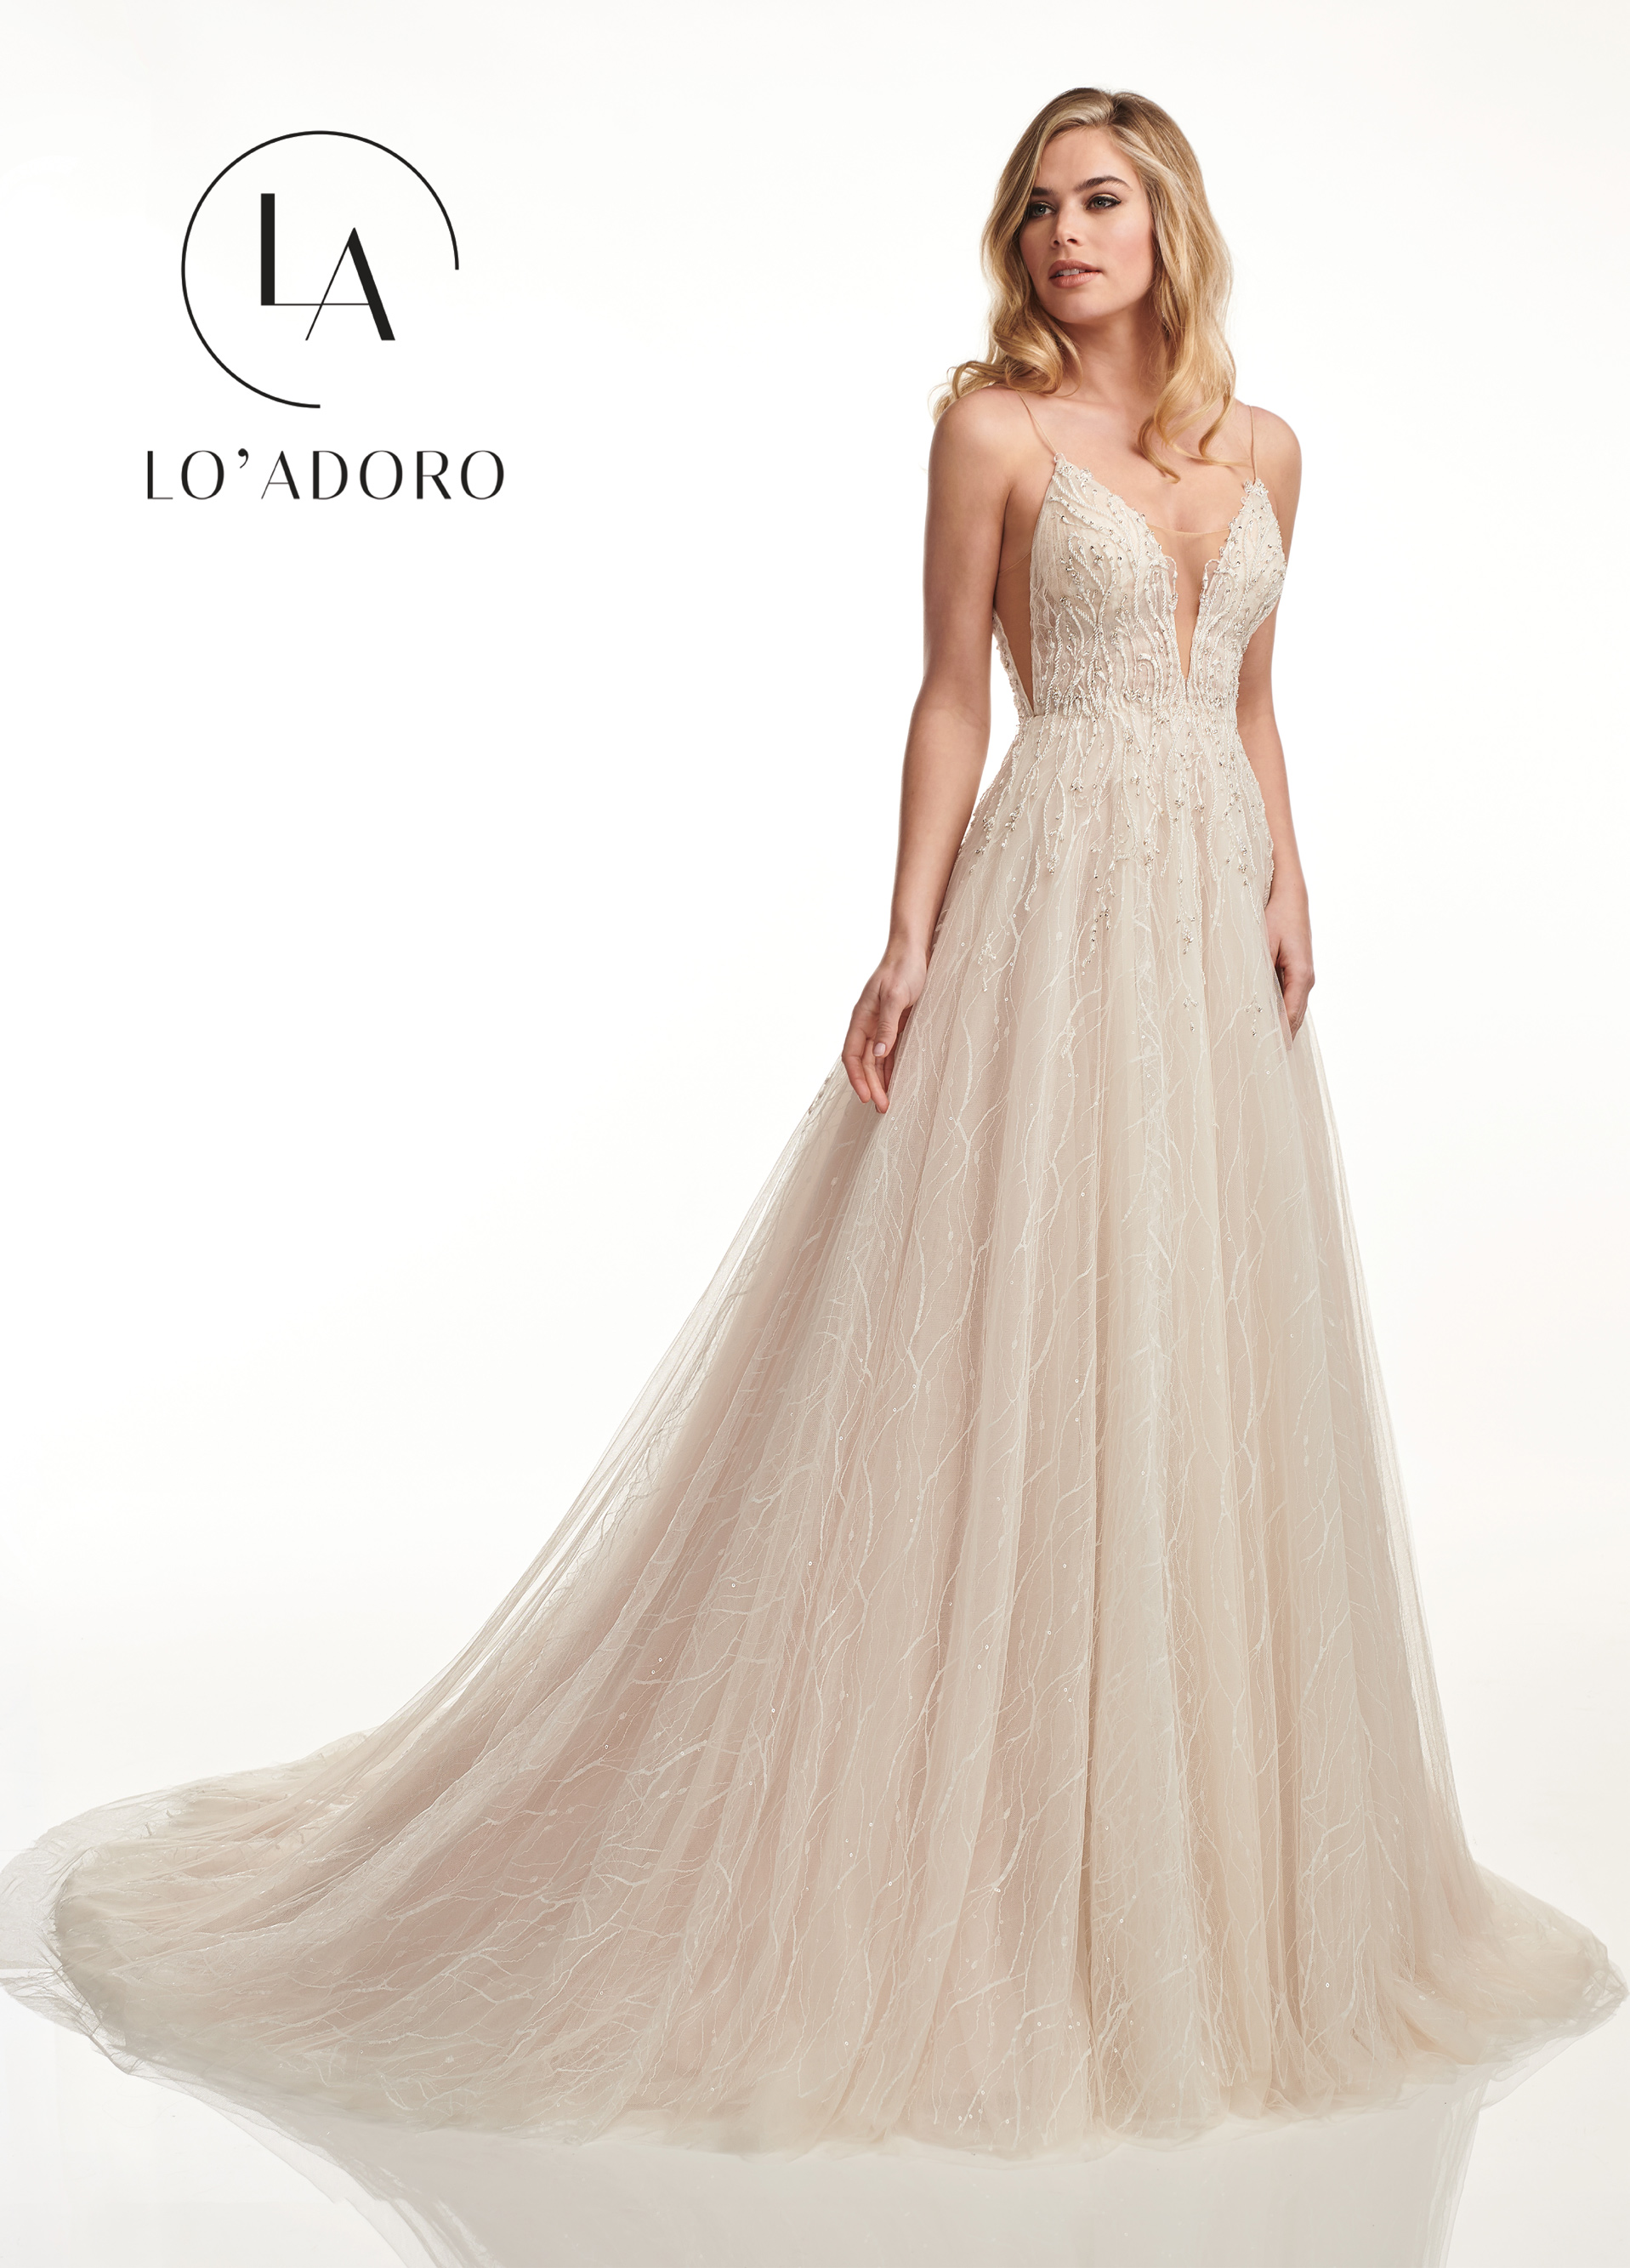 V-Neck A-Line Lo' Adoro Bridal in Nude Color